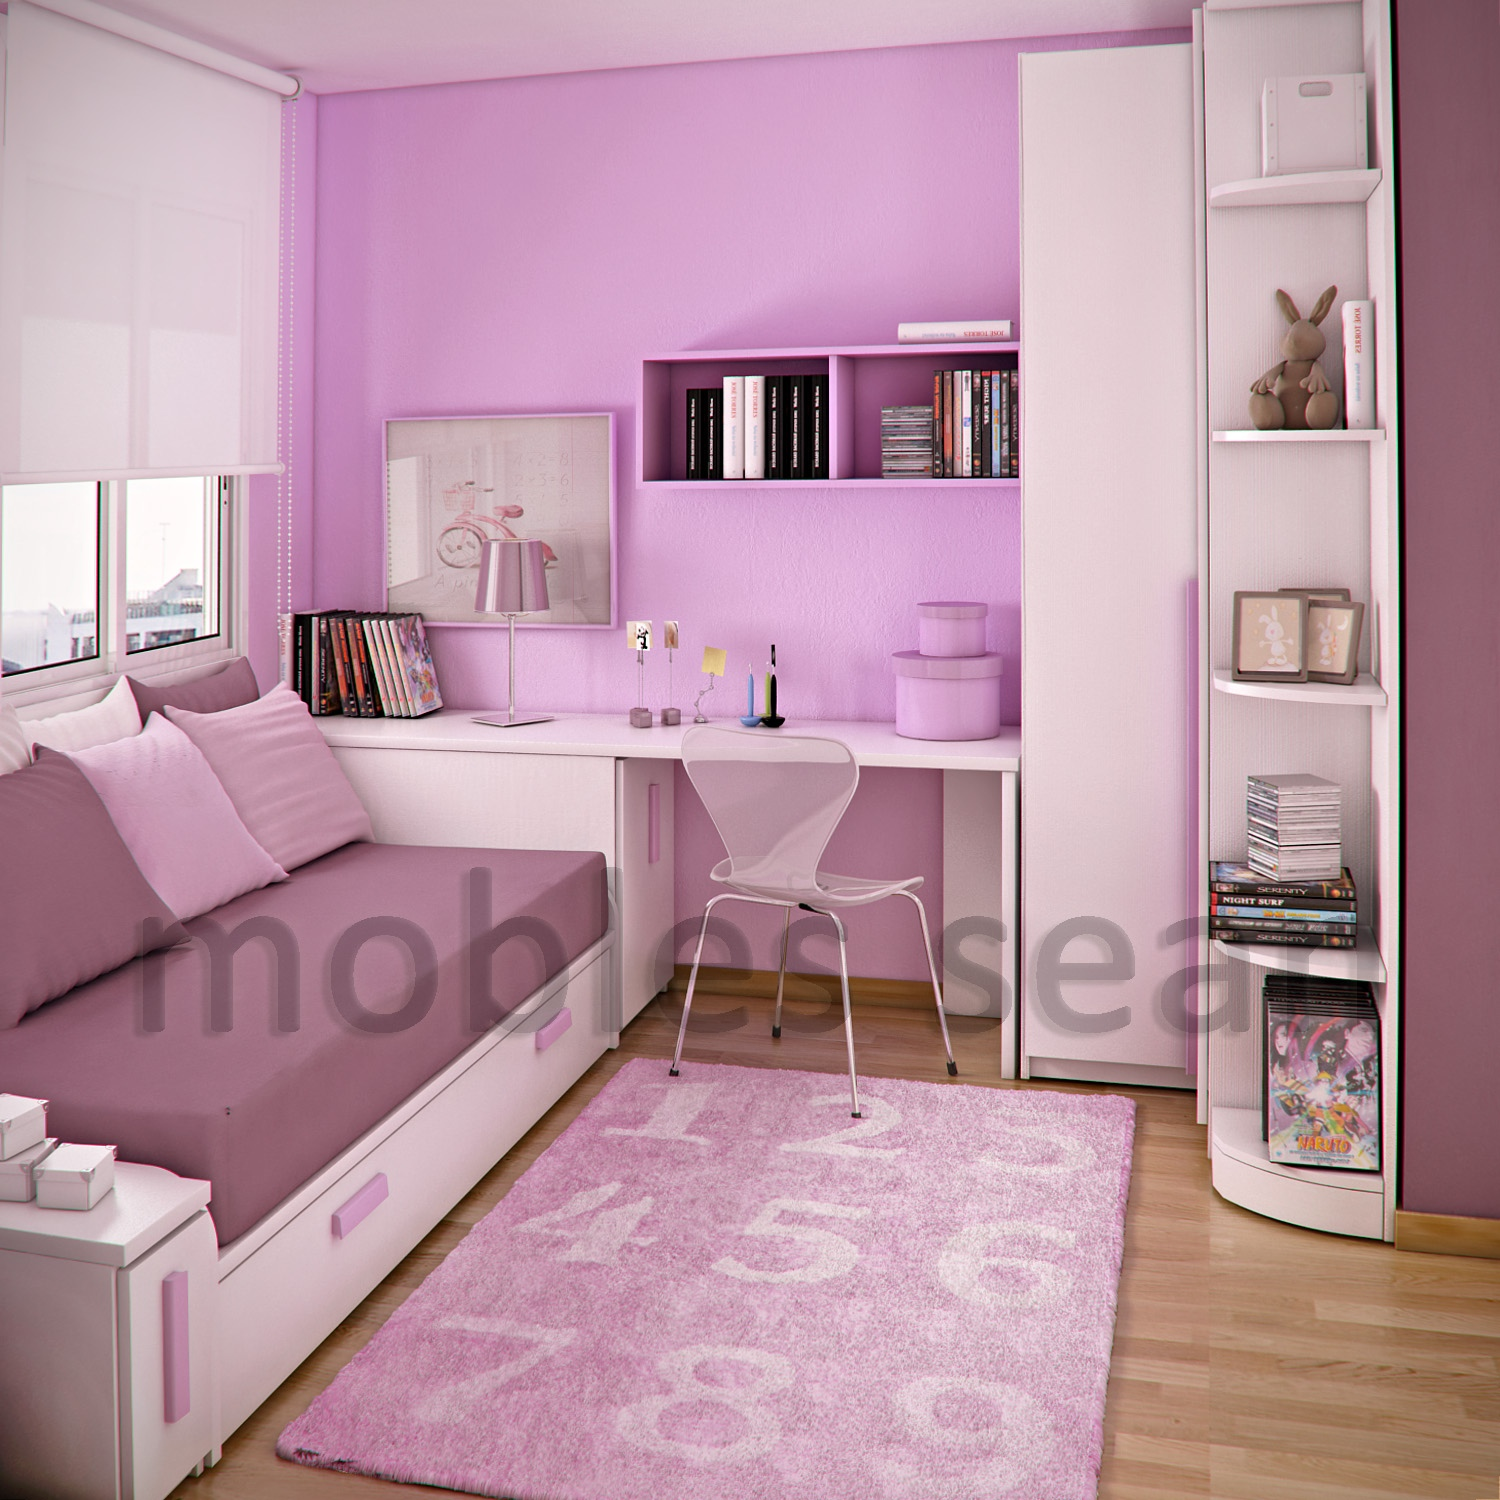 Small Room Design Kids Bedroom Ideas For Rooms Pink Childrens Home